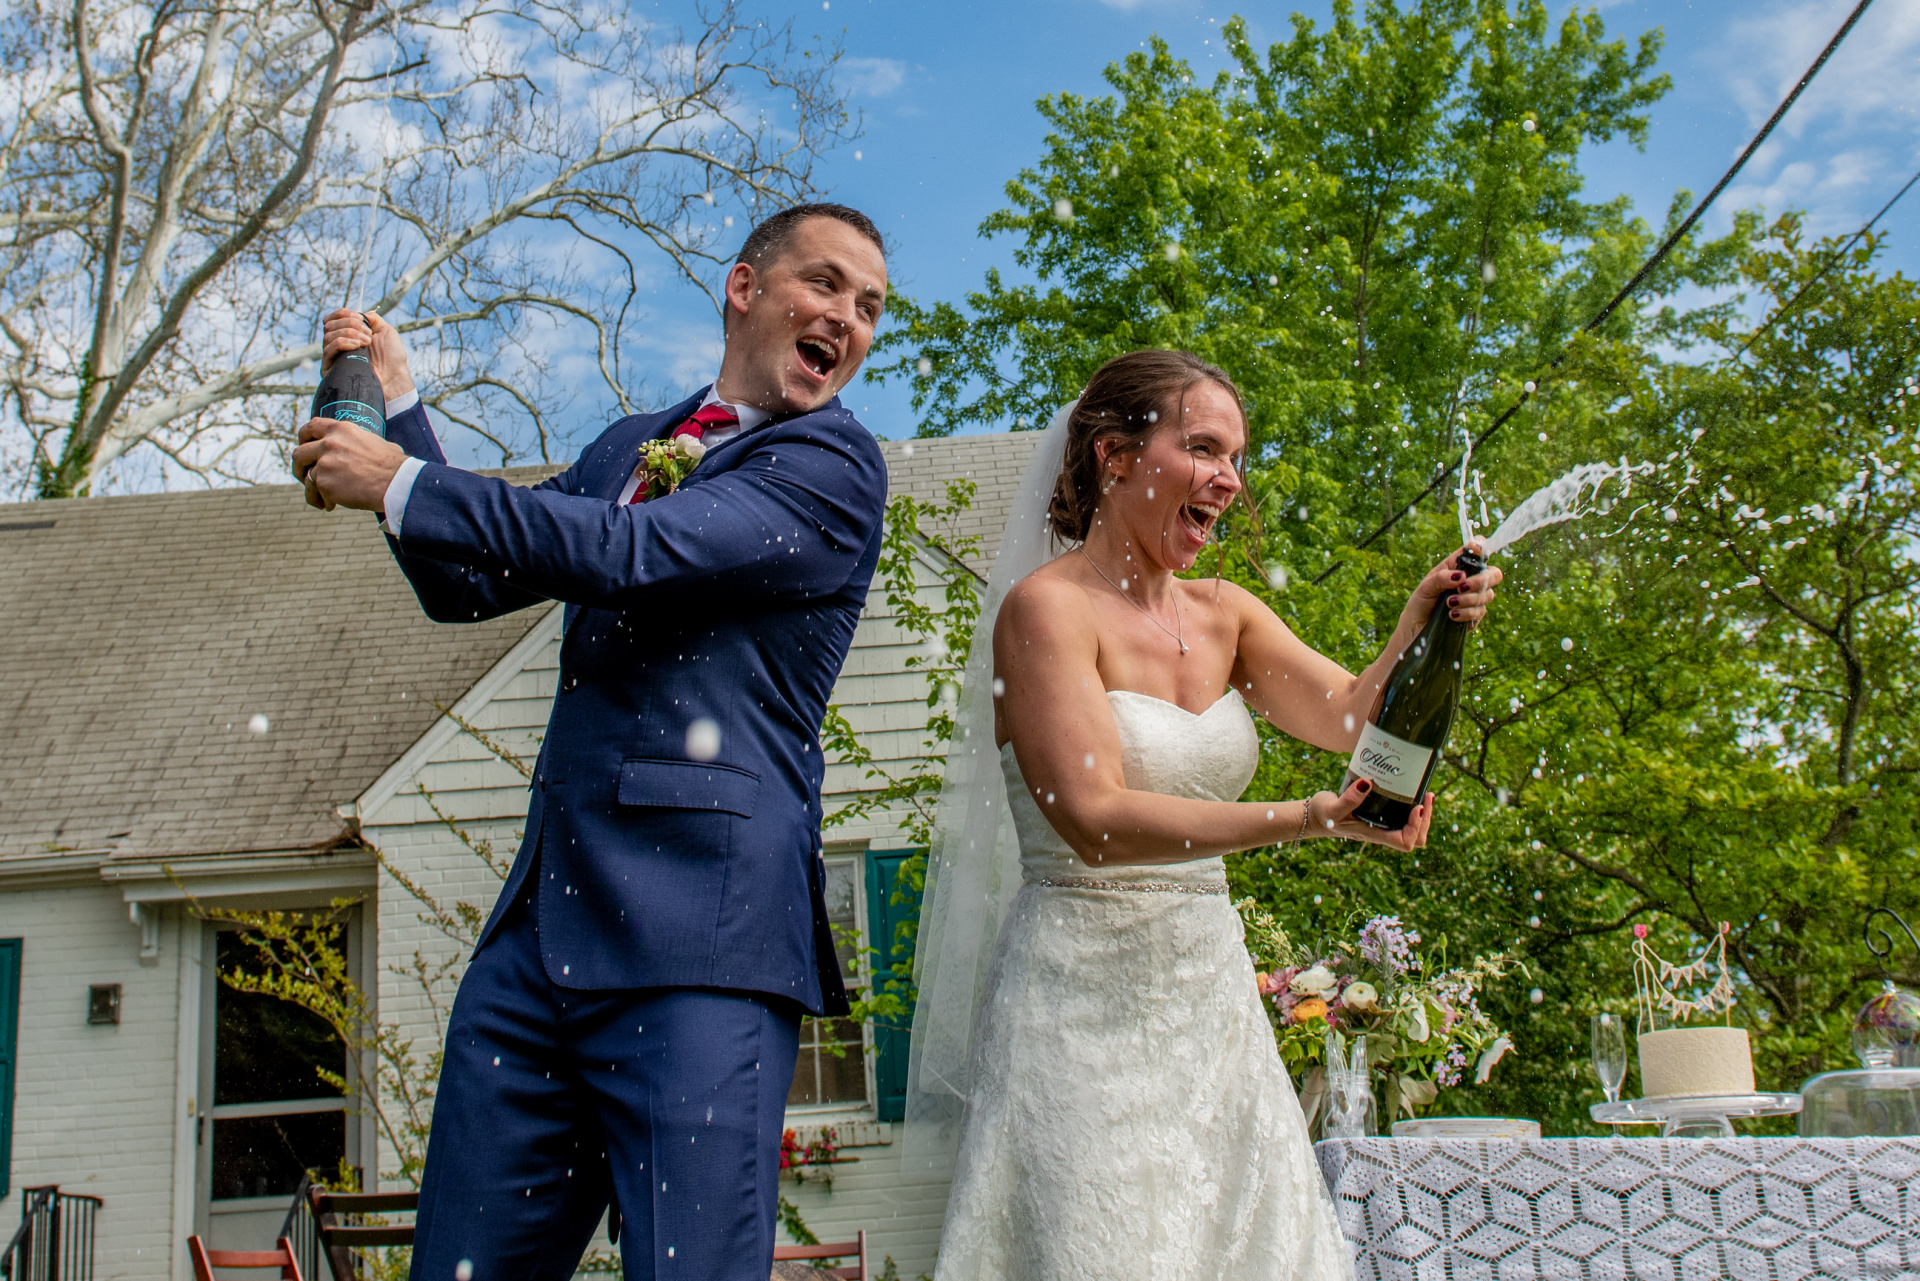 Outdoor Maryland Elopement Photos | After the ceremony the bride and groom invited their neighbors to share in some delicious cake and champagne